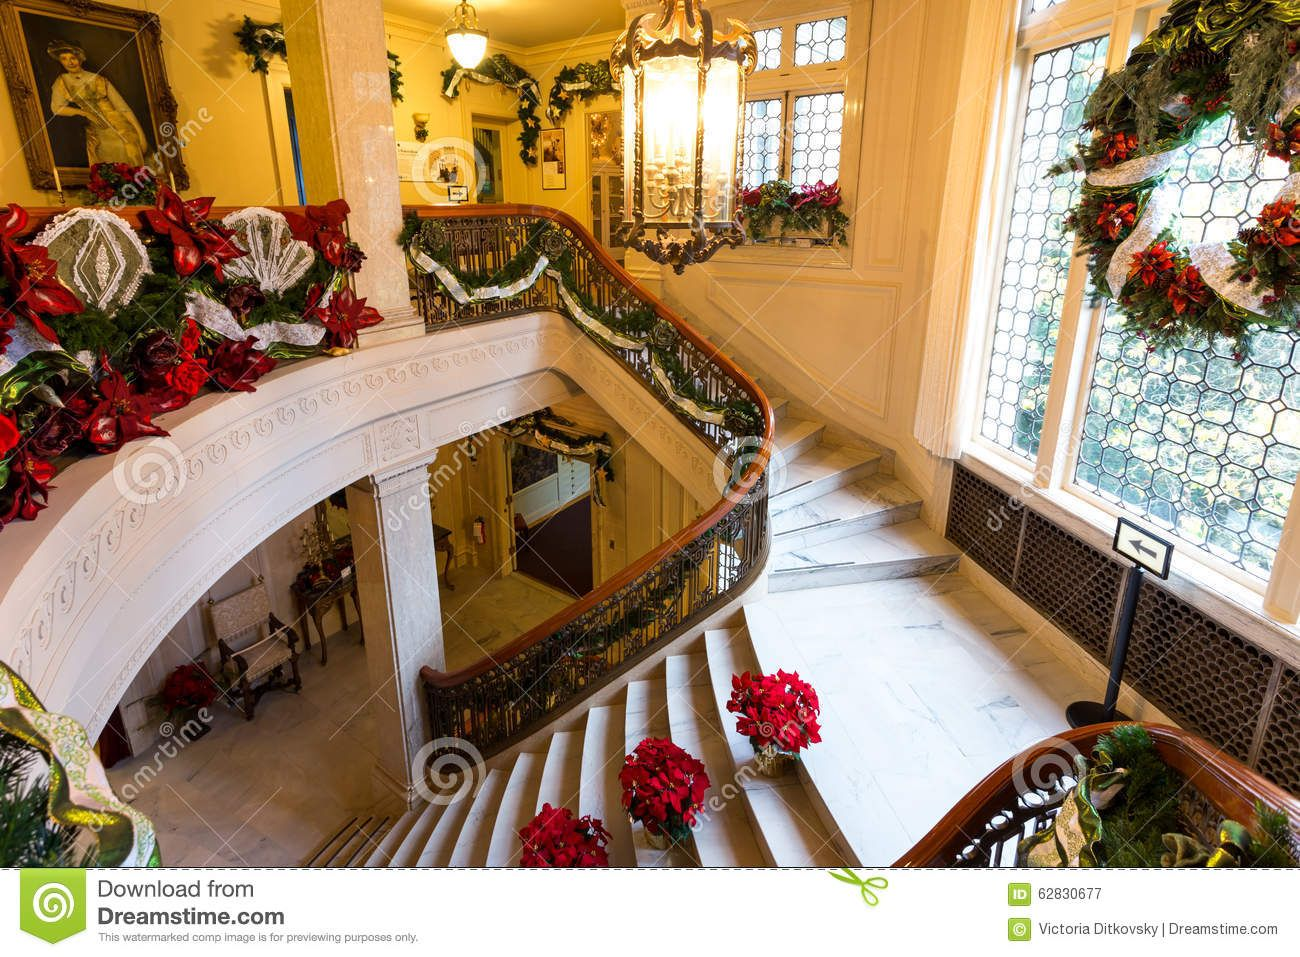 Exceptionnel Photo About Famous Museum In Portland, Oregon, Pittock Mansion Decorated  For Christmas   62830677